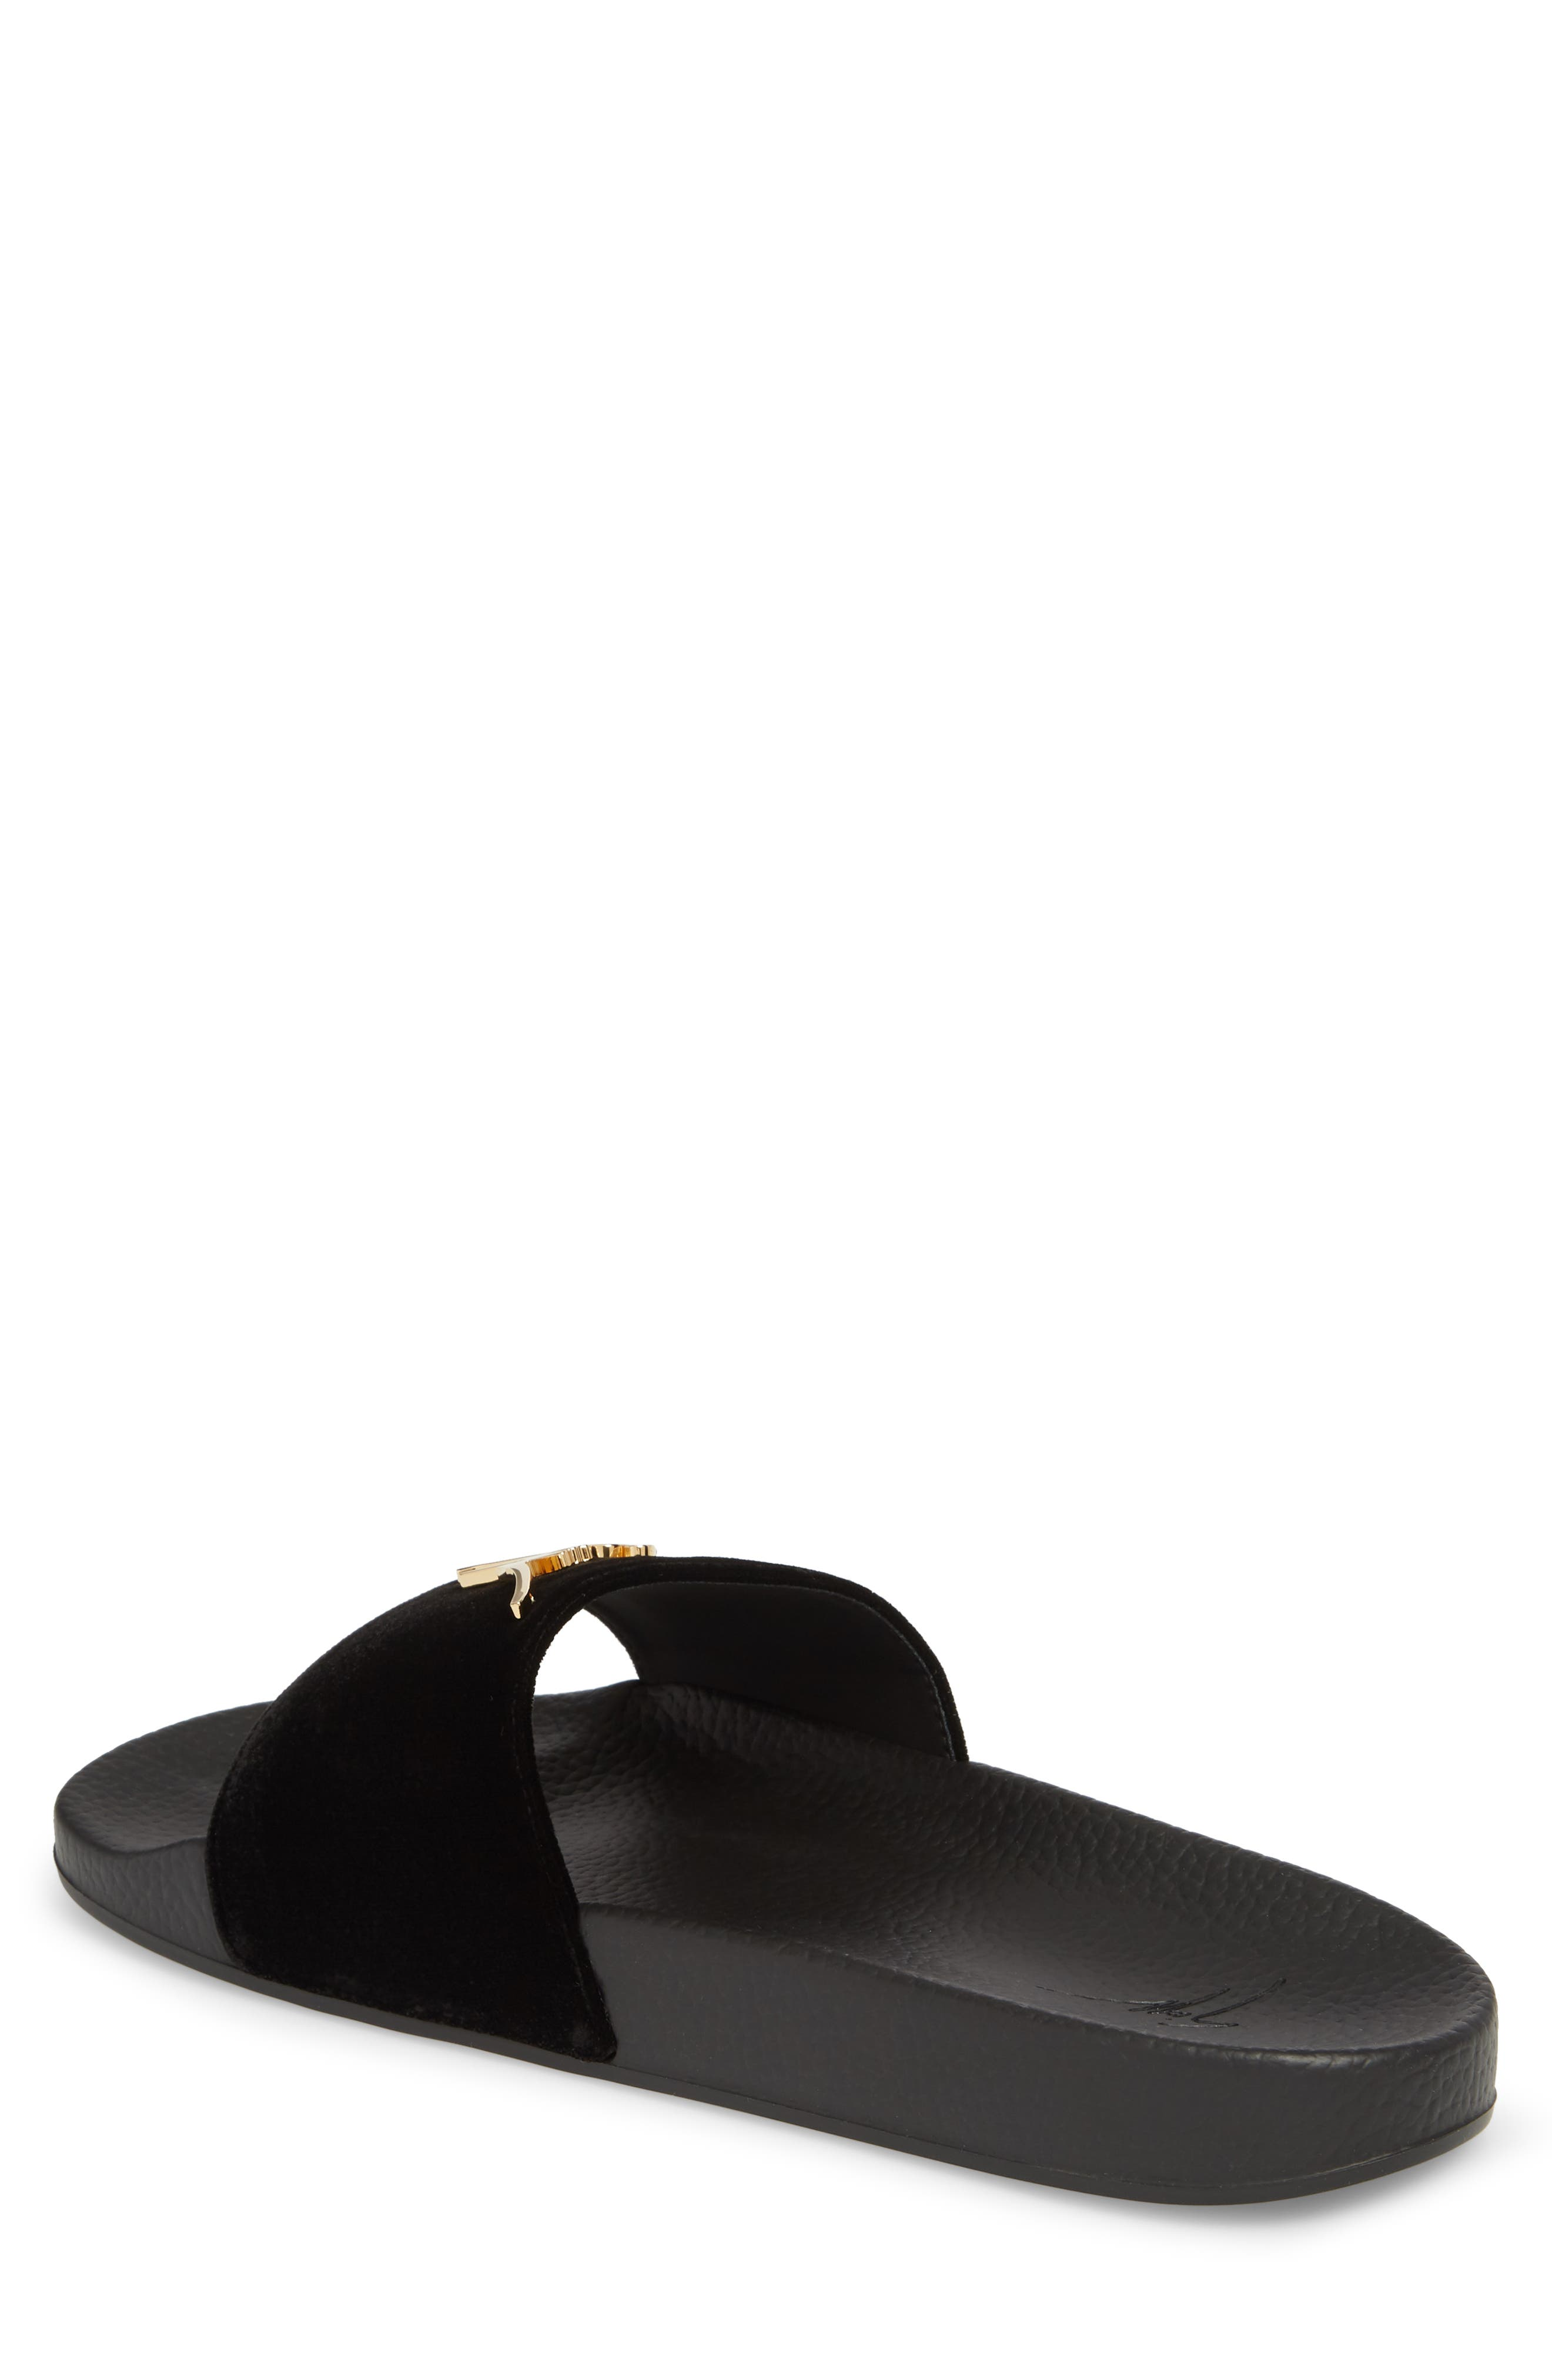 Slide Sandal,                             Alternate thumbnail 2, color,                             NERO